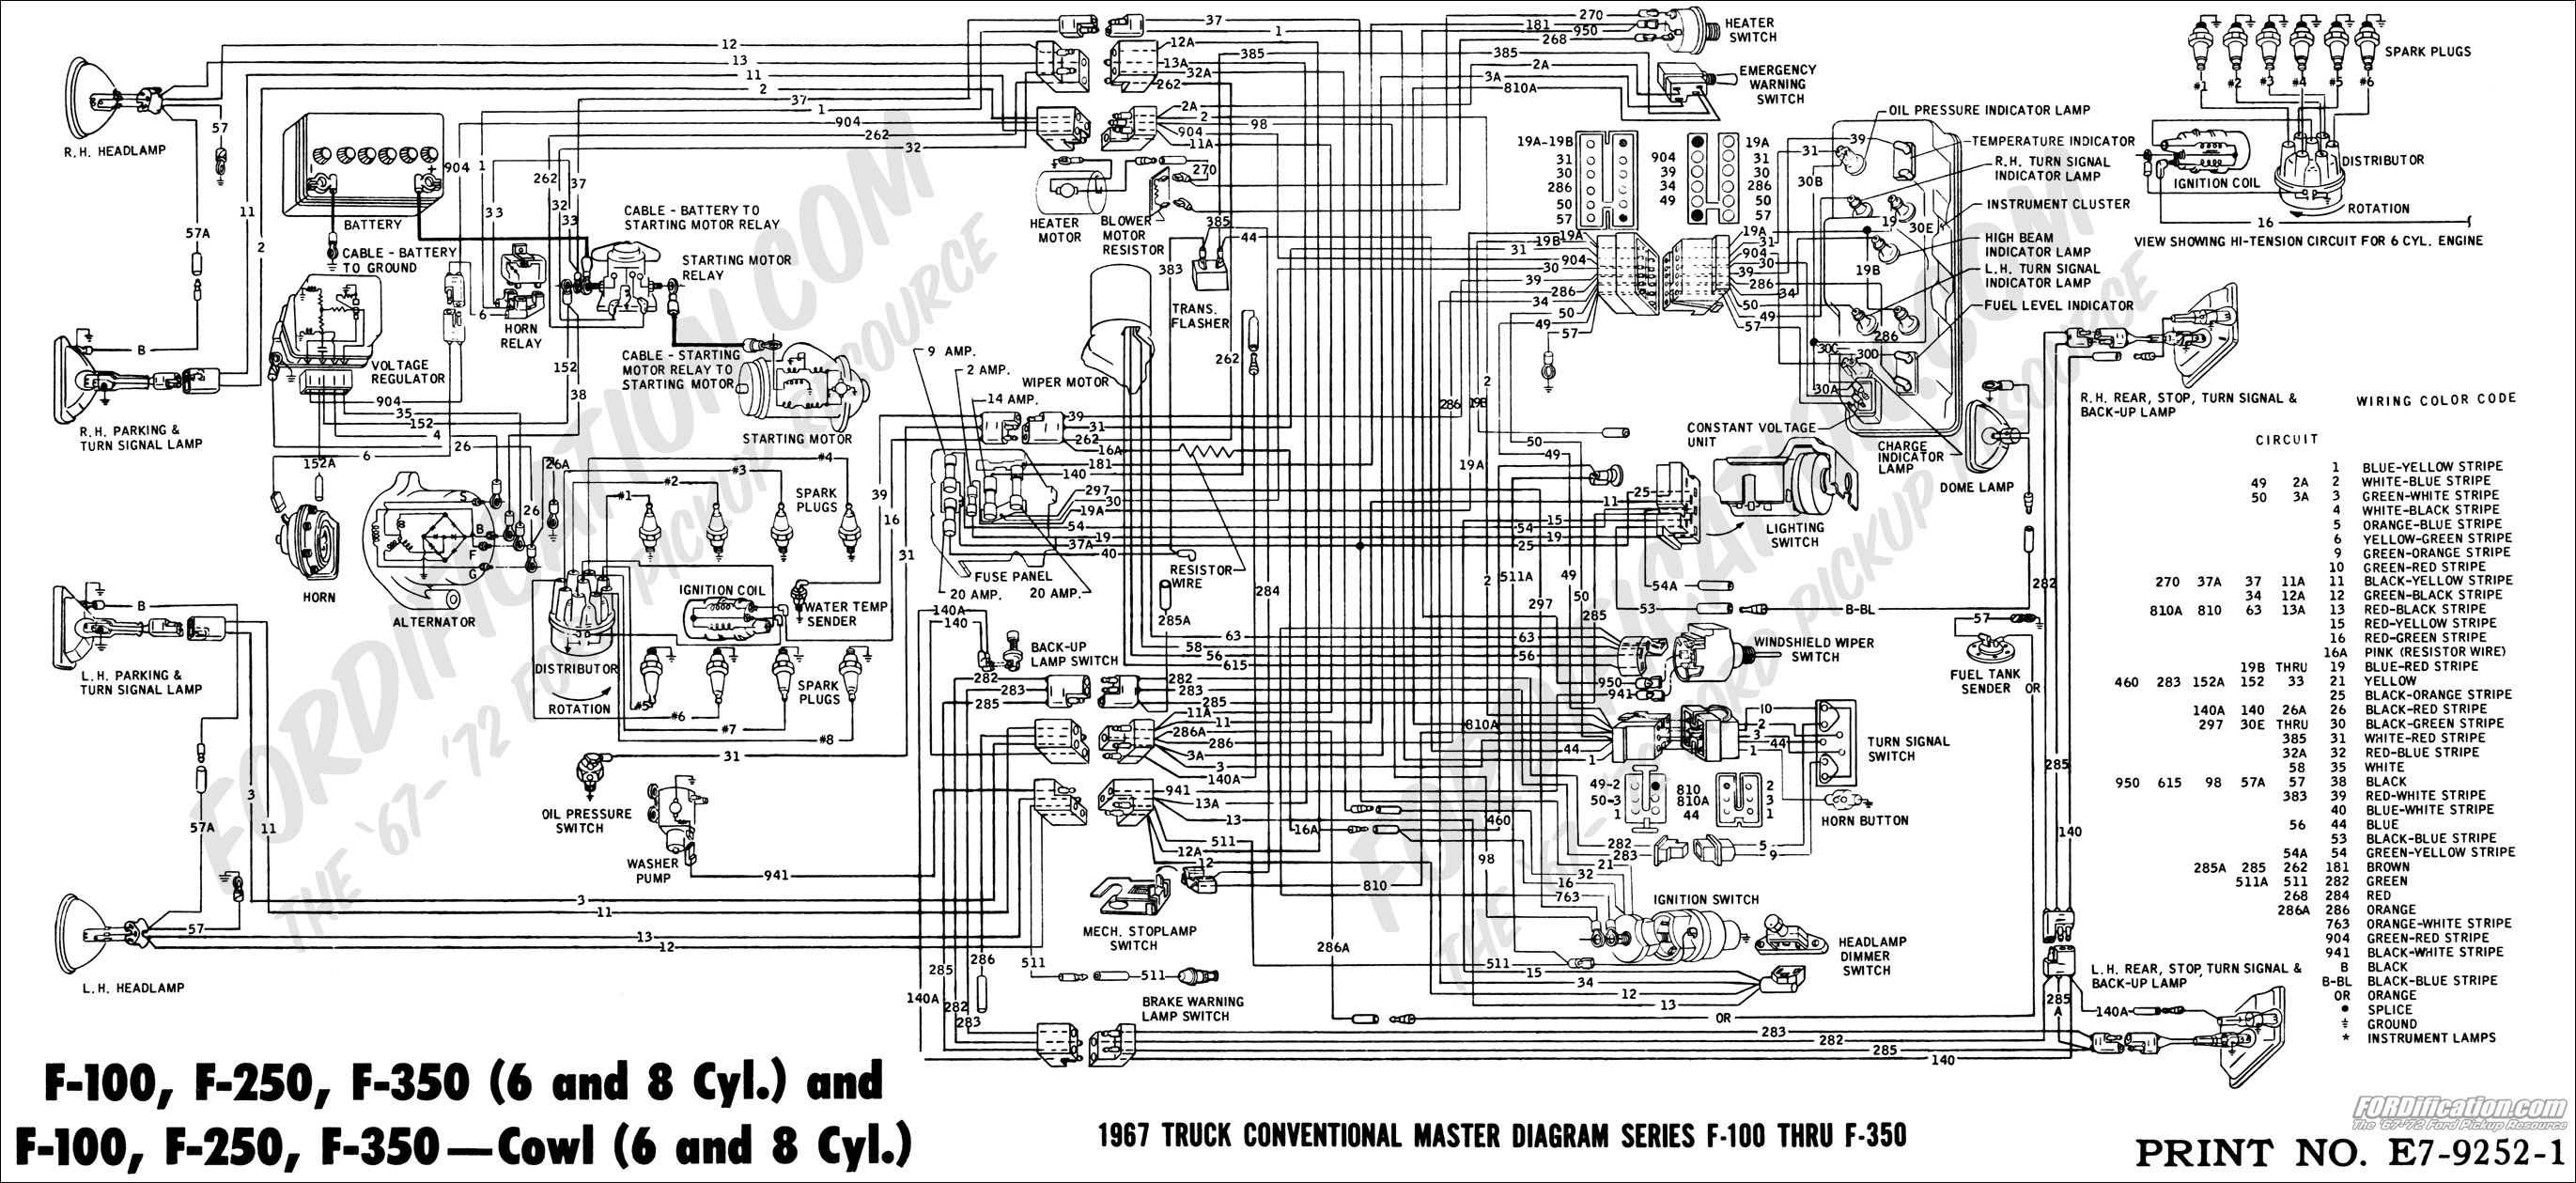 Ford Truck Technical Drawings And Schematics - Section H